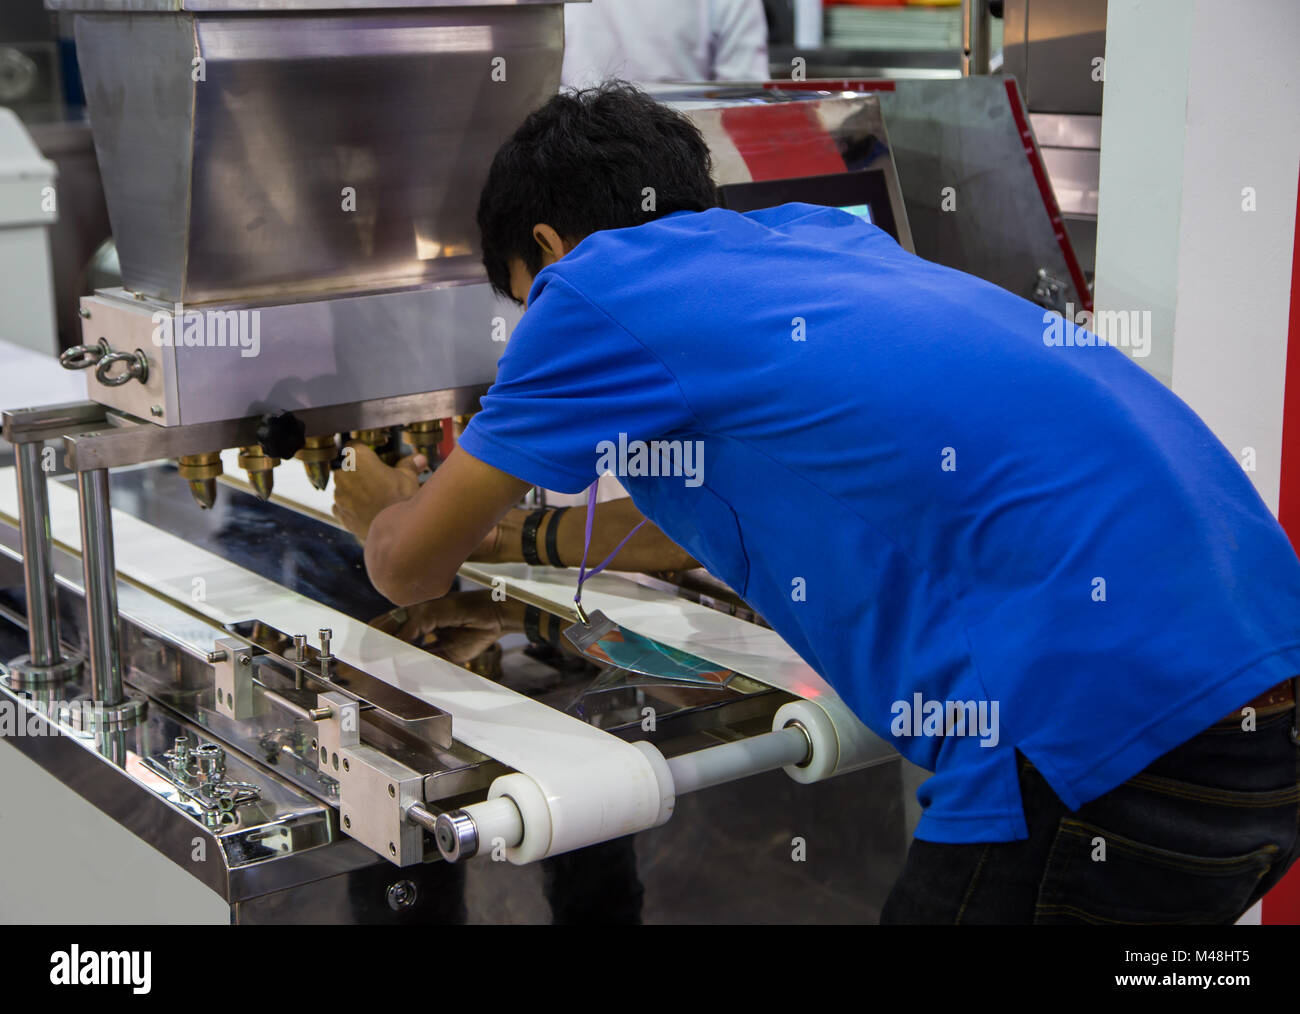 Food worker operate bakery making machine - Stock Image